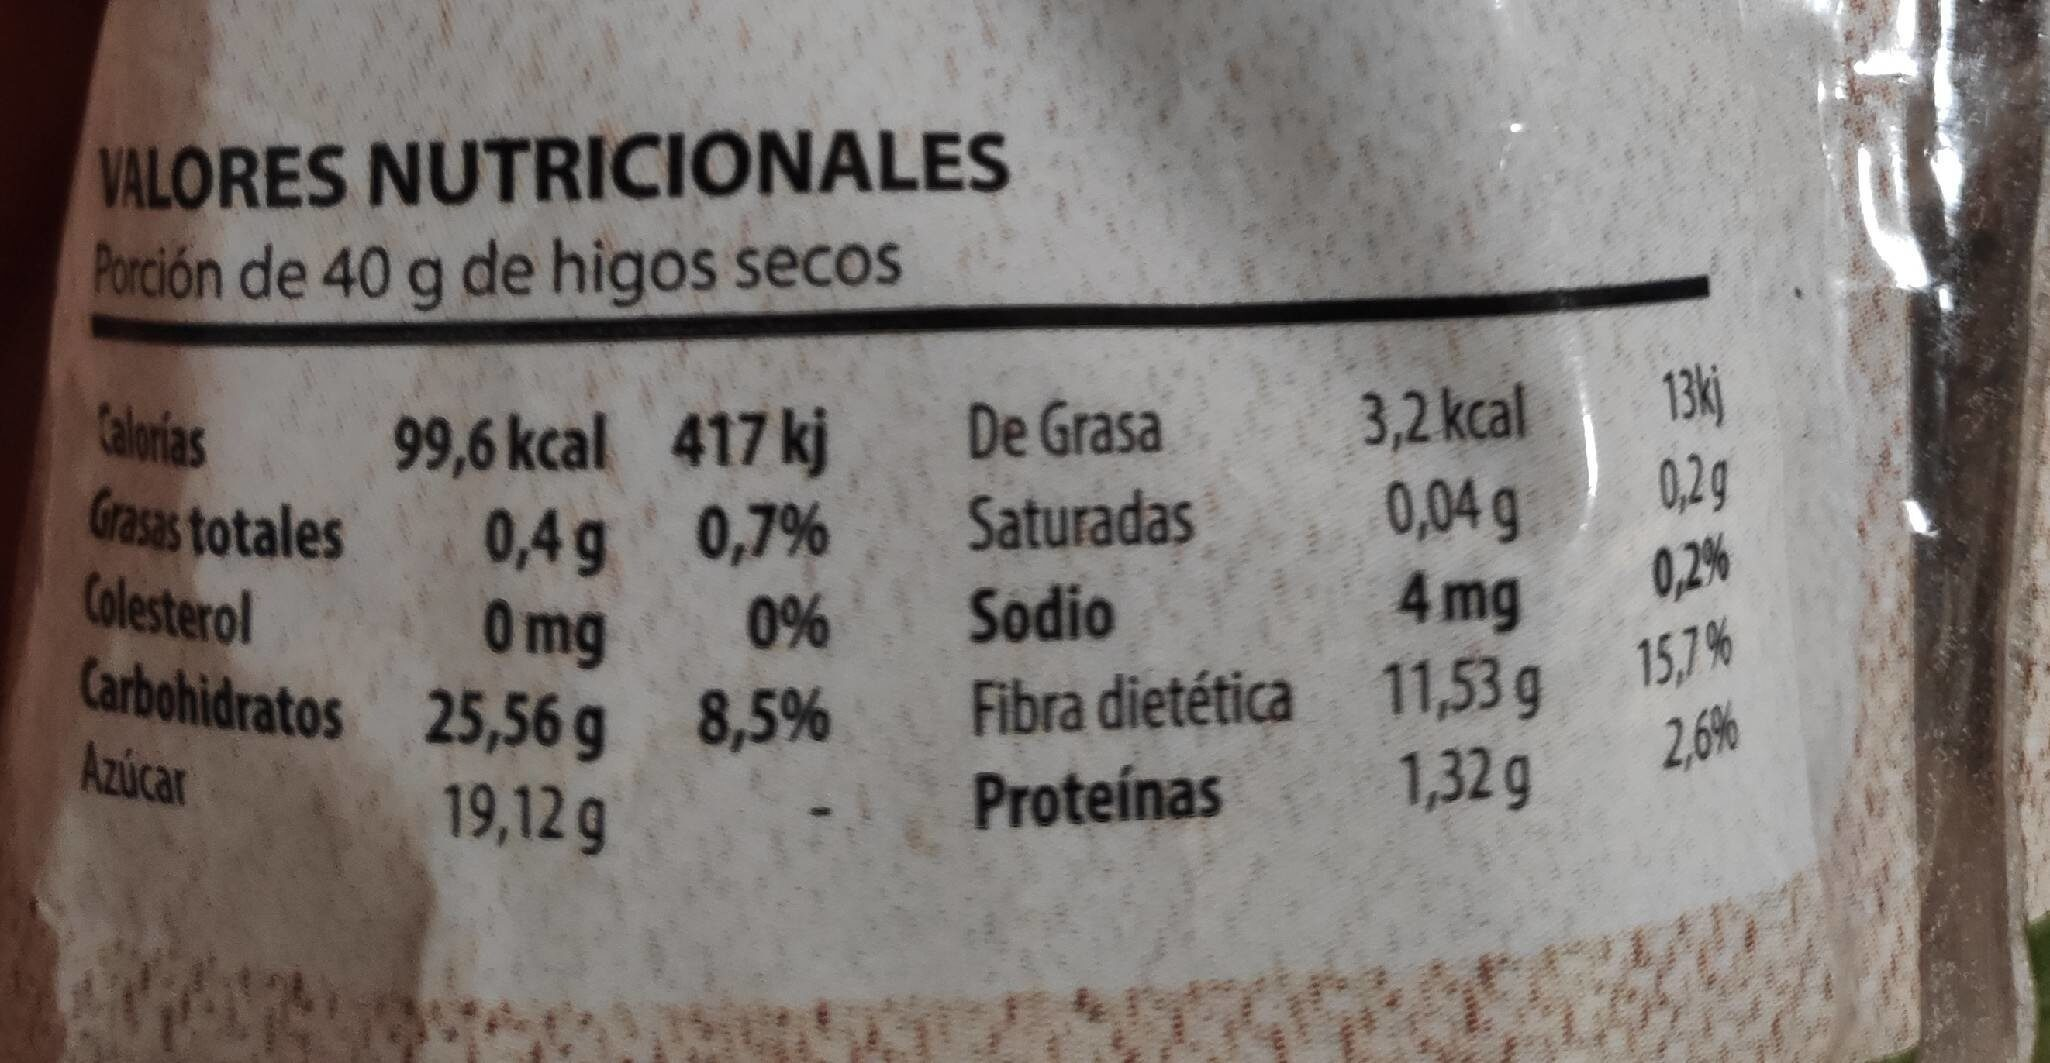 Higos secos - Nutrition facts - es